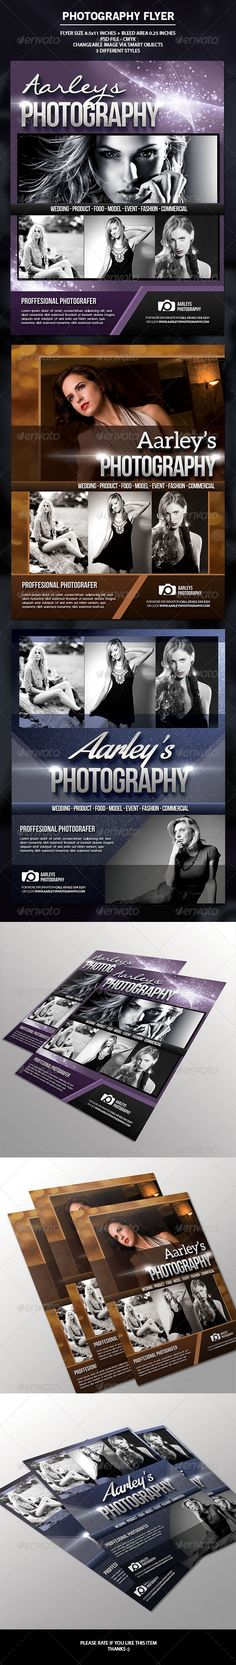 Buy Photography Flyer by arifpoernomo on GraphicRiver. This Photography Flyer, can be used for promote your photography business. Very easy to edit text and change images v. Photography Flyer, Photography Business, Wedding Photography, Photography Magazine, Flyer Printing, Change Image, Event Flyers, Flyer Layout, Print Templates